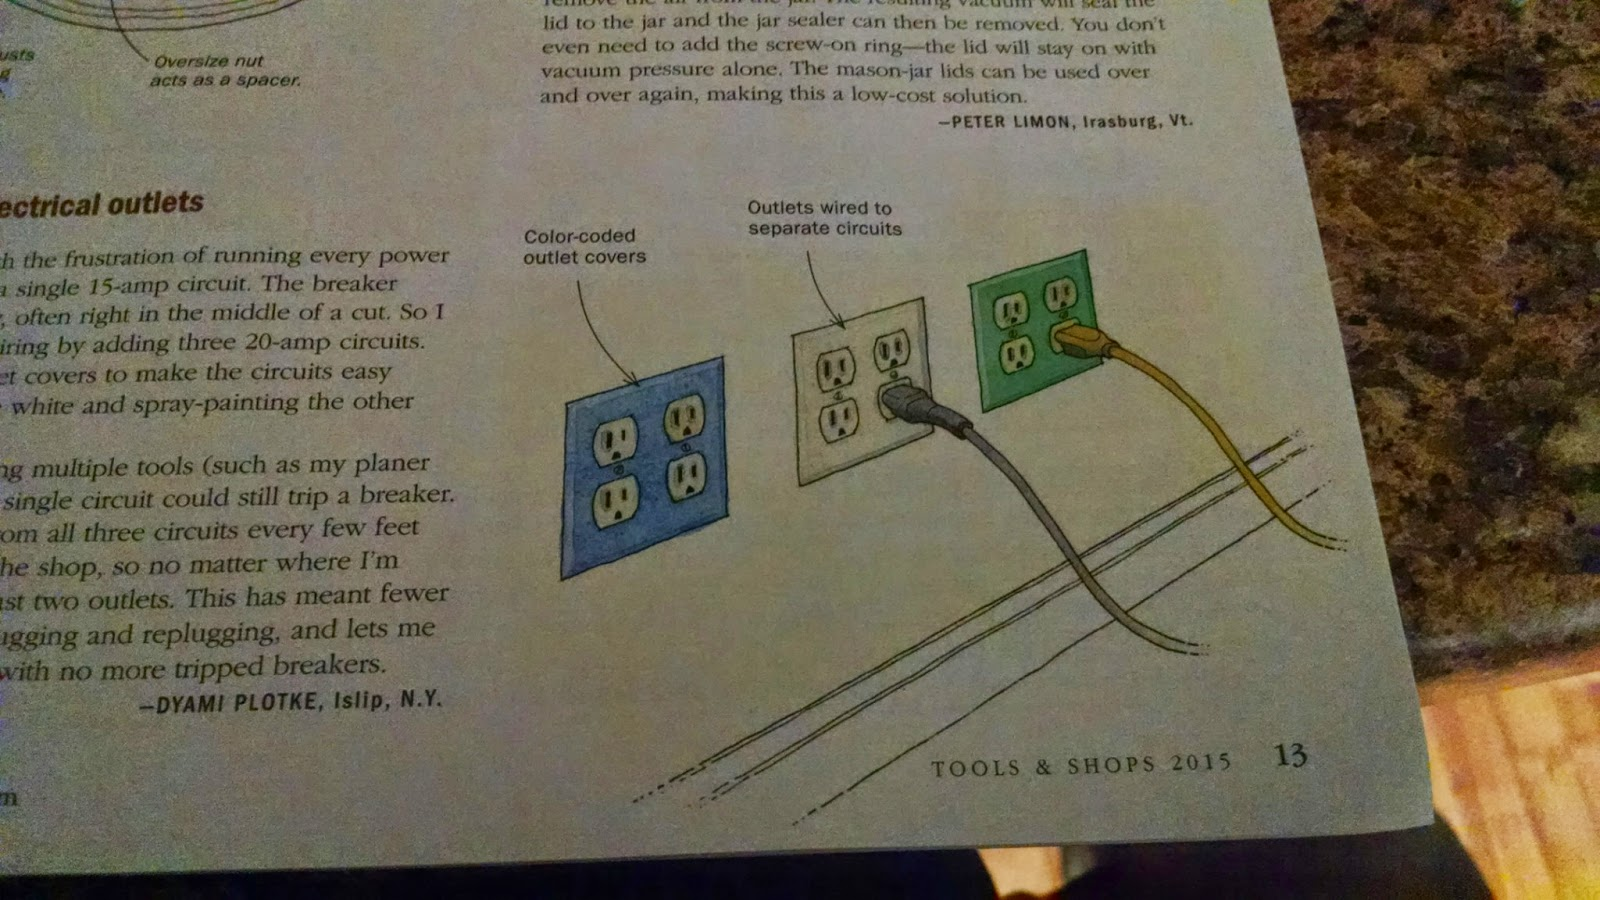 Fine Colored Outlet Covers The Penultimate Woodshop Wiring An In Middle Of Circuit Beautiful Page 13